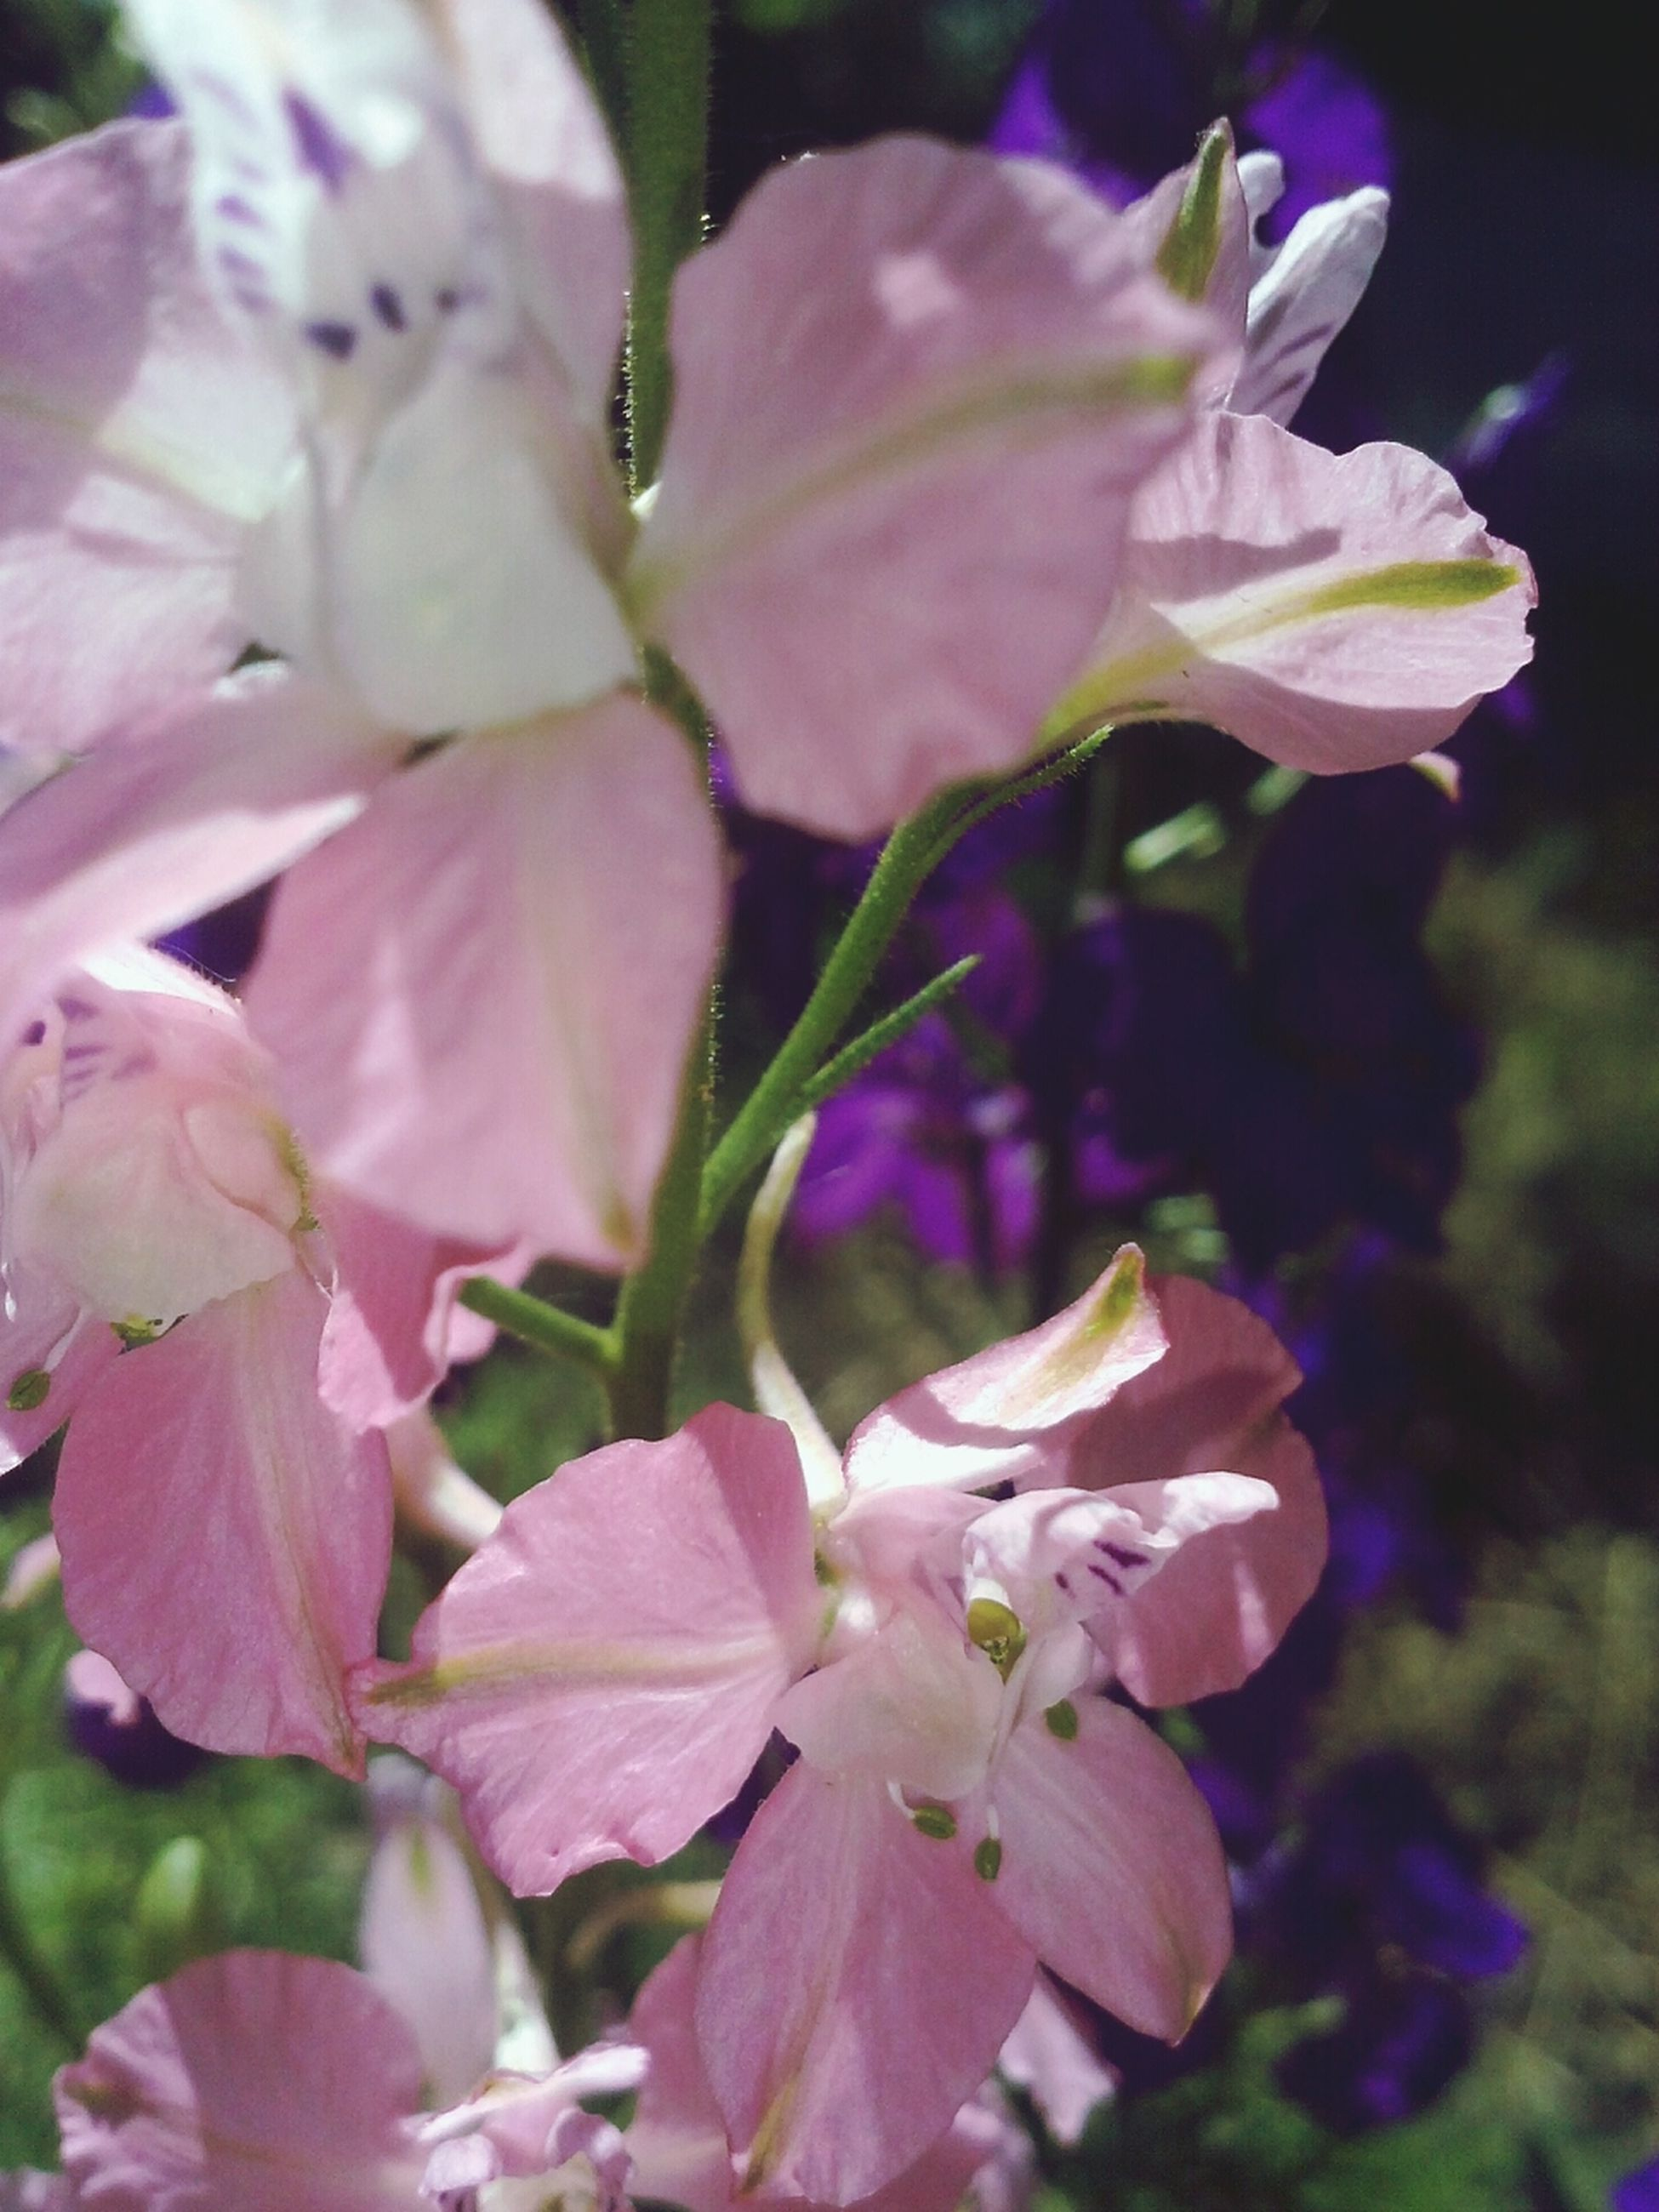 flower, petal, freshness, fragility, growth, beauty in nature, flower head, close-up, nature, pink color, focus on foreground, blooming, stamen, plant, in bloom, blossom, park - man made space, pollen, day, outdoors